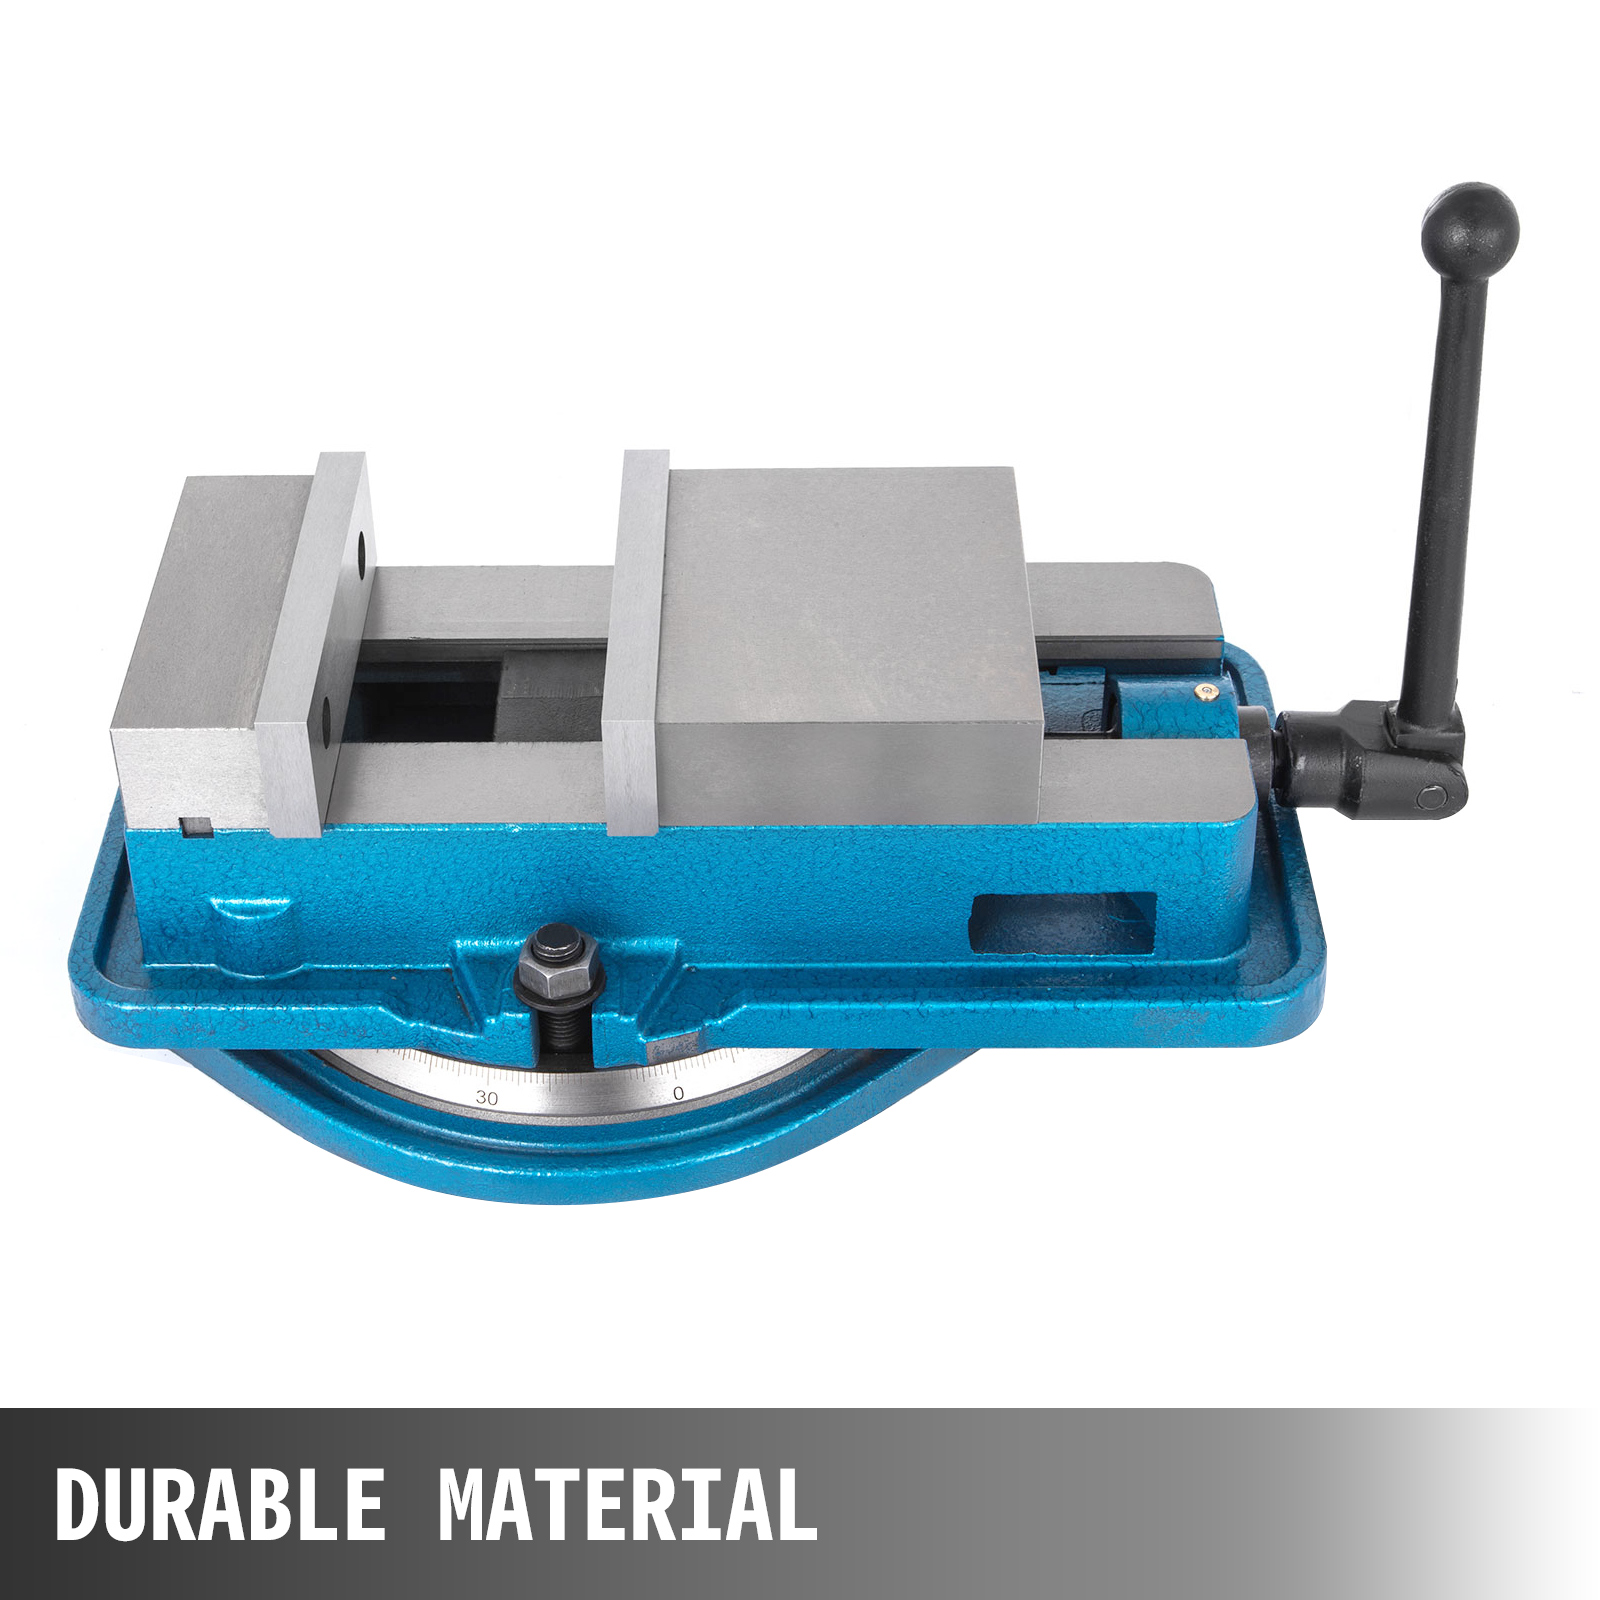 VEVOR 80MM Swivel Base Bench Vise Rotating Vice Clamping Vise 360 Degrees Precise Scale Hardened Metal Drill Press